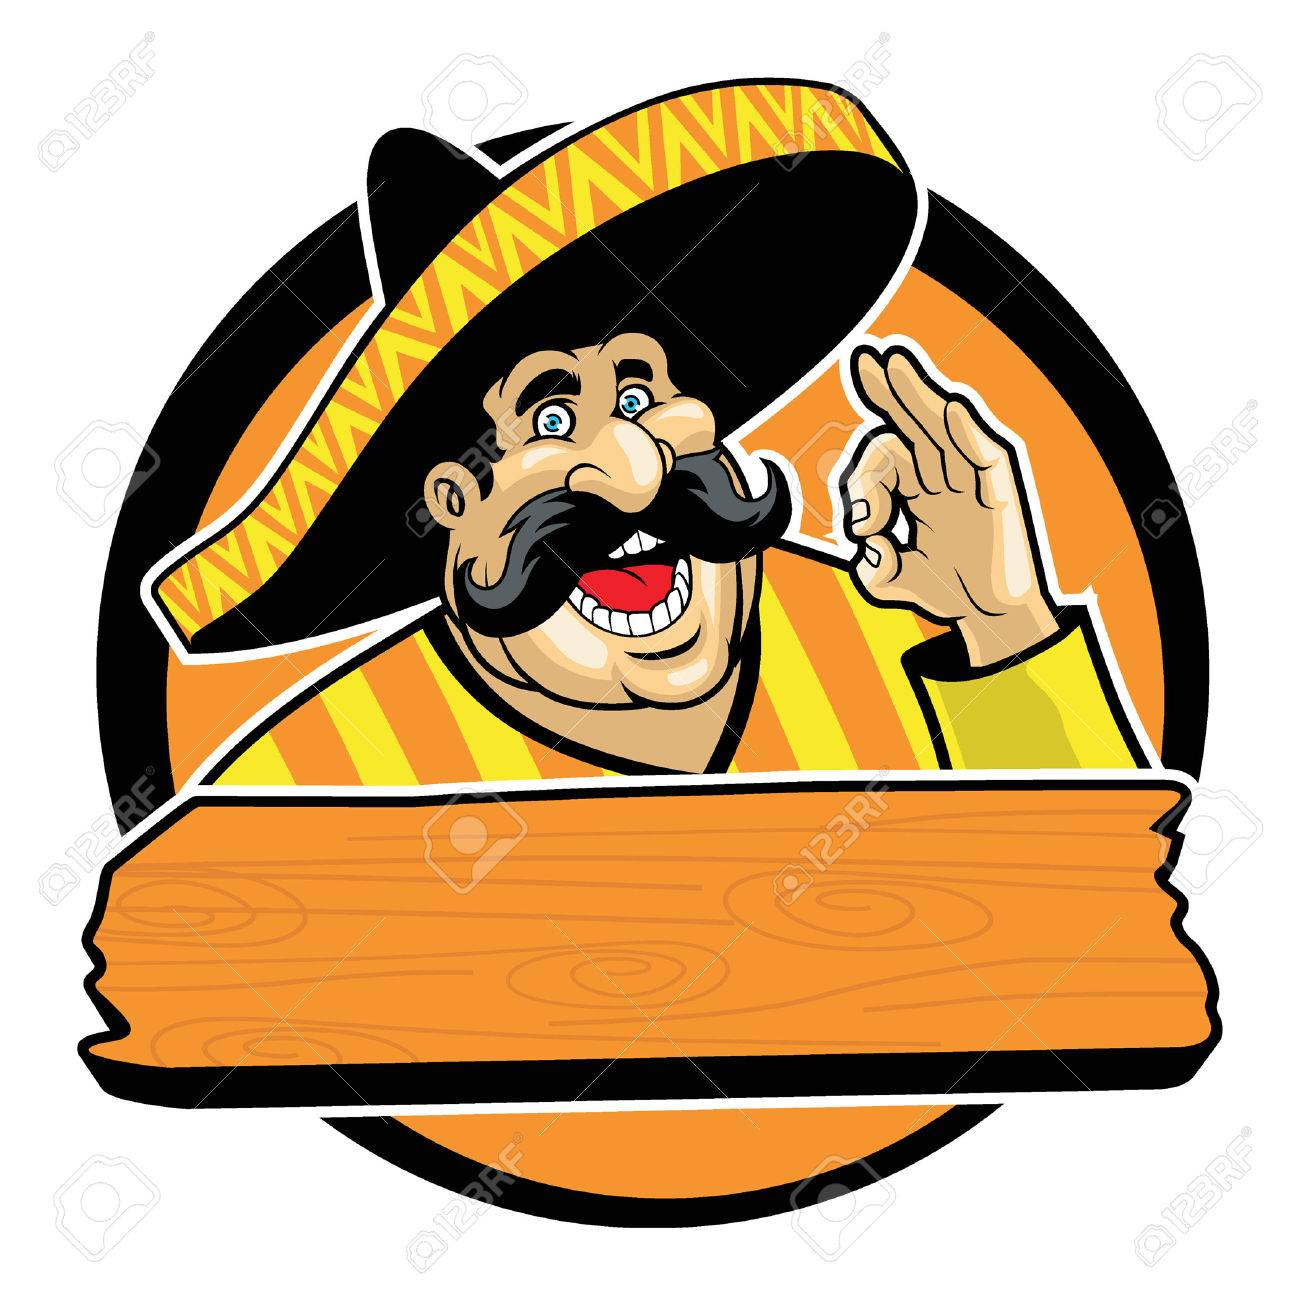 Happy Mexican male with sombrero and okay hand sign - 59721557